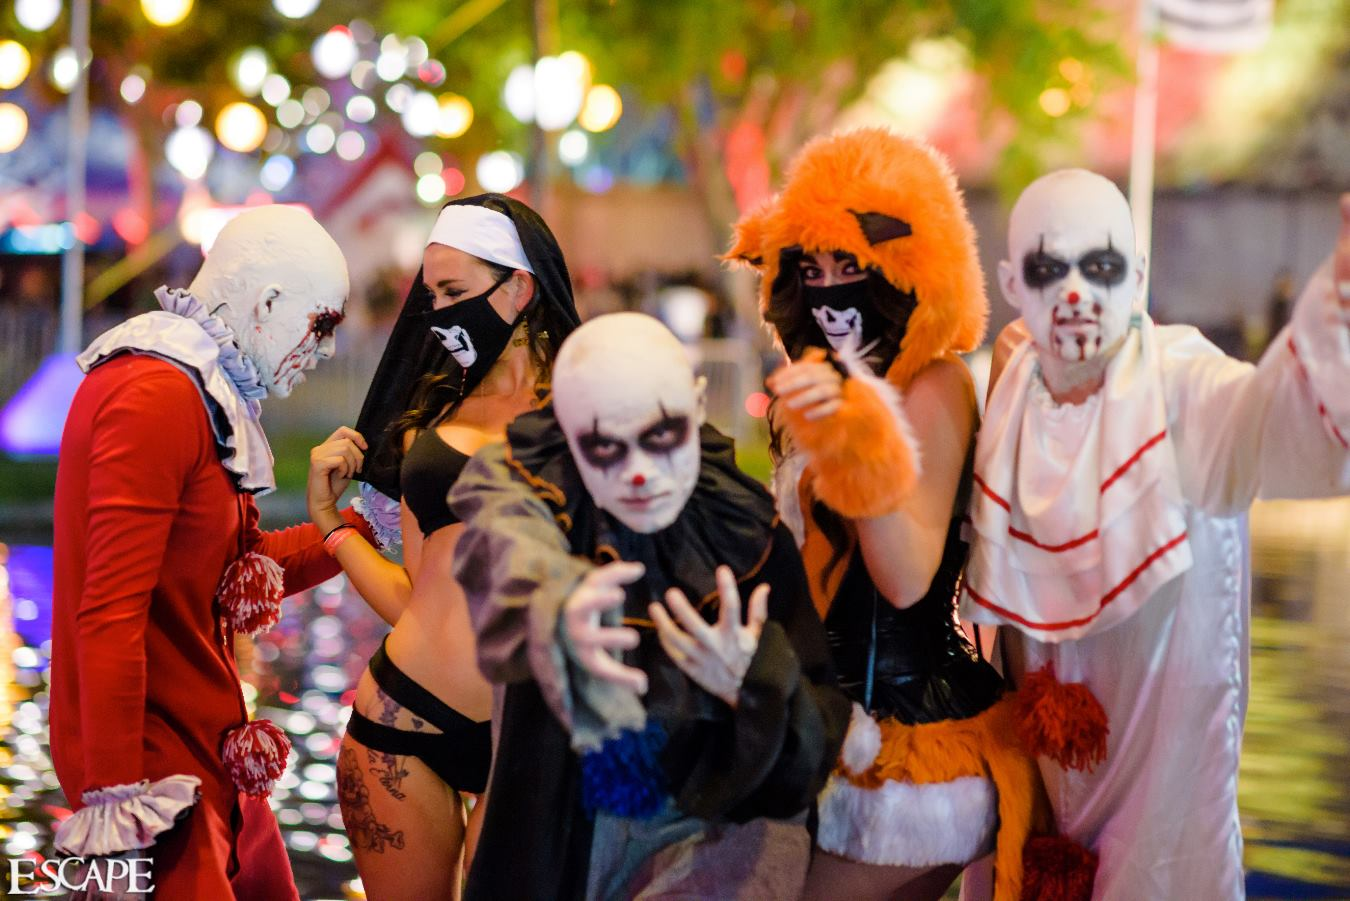 Escape Halloween: Psycho Circus Returns to SoCal for 2017 Edition